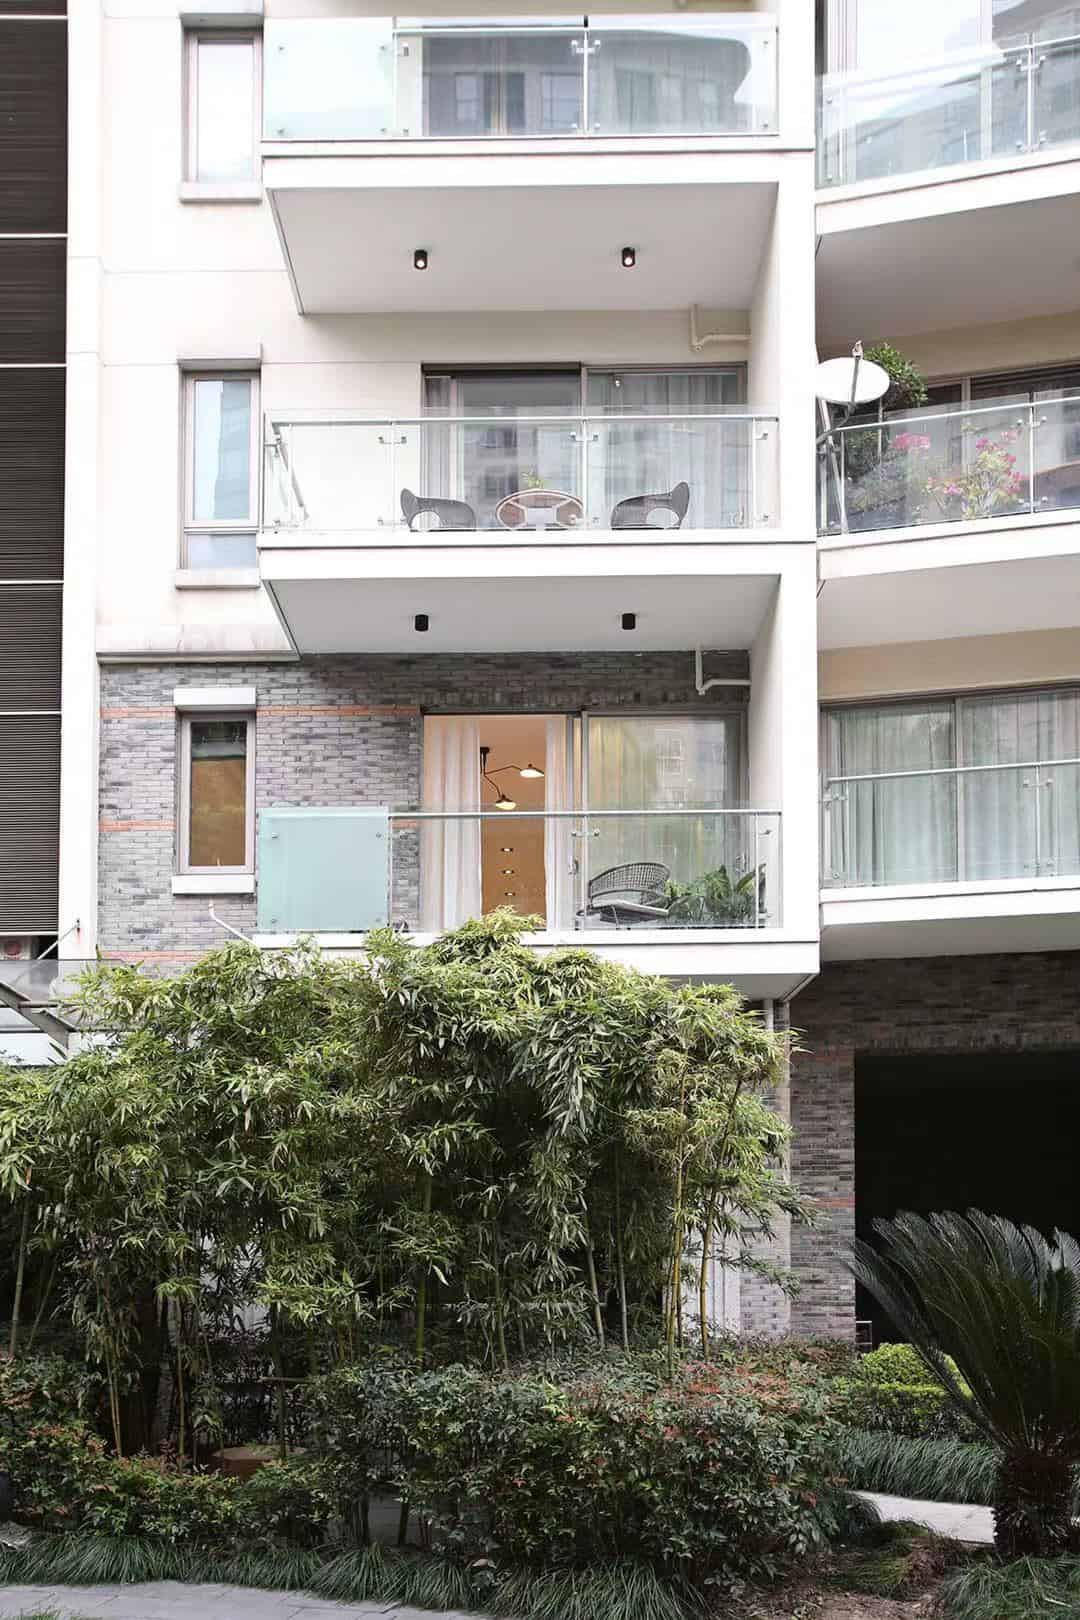 Huangpu;South Jinan rd lane 168.A bright 4brm+3bth.L1/2/8.price=55000rmb.